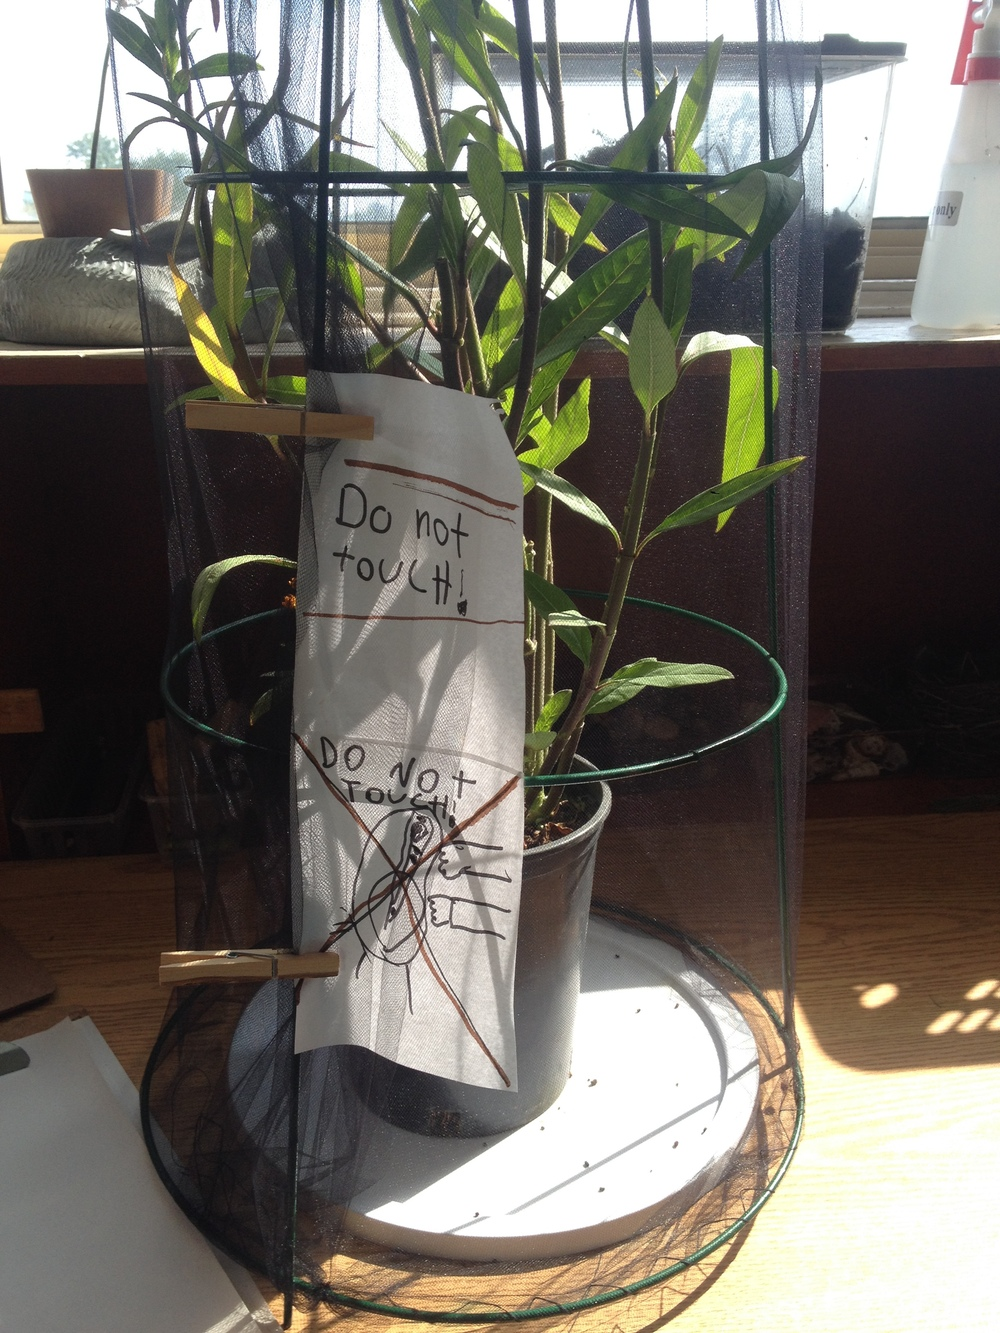 One student wrote signs to discourage her classmates from touching the monarch caterpillars growing in our classroom.